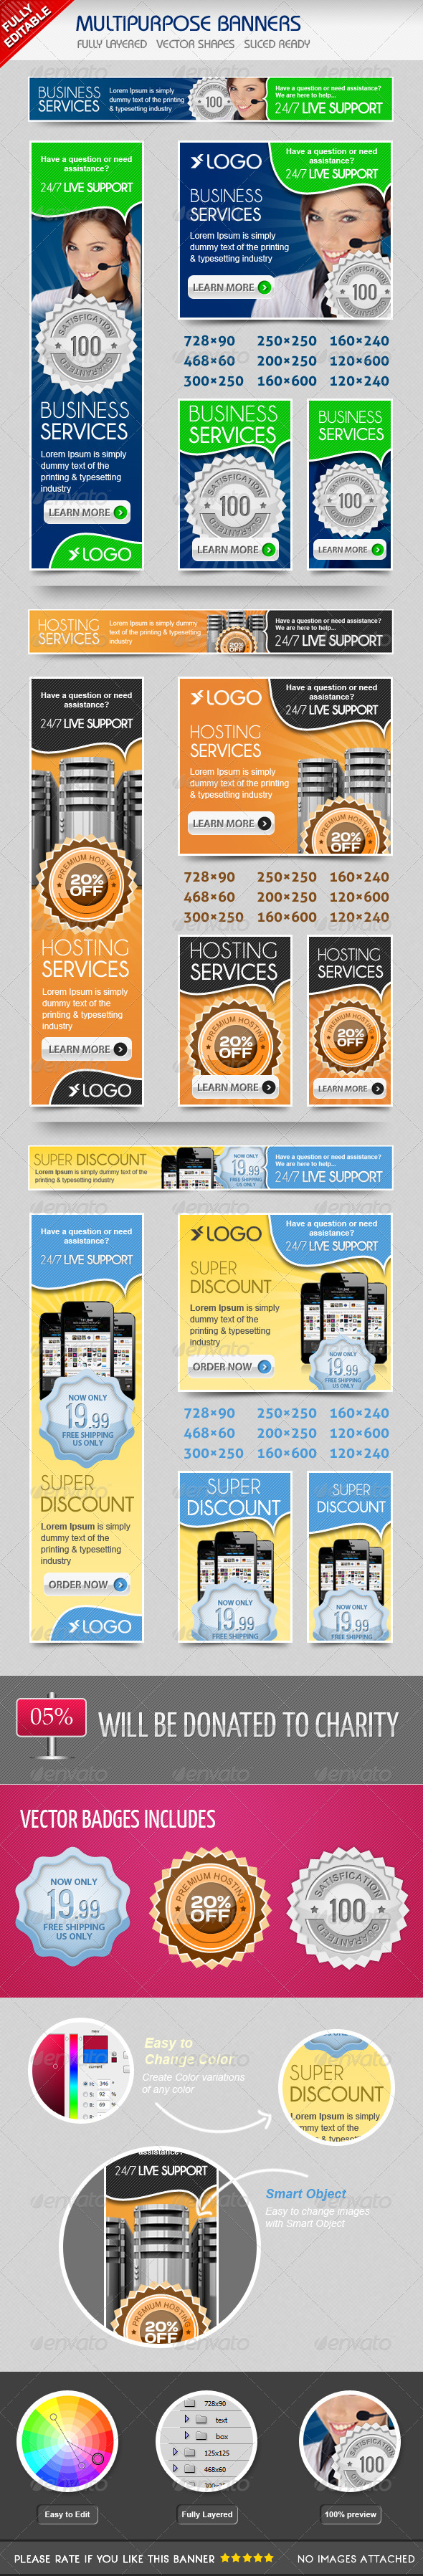 GraphicRiver Multiporpose Banners 4746413